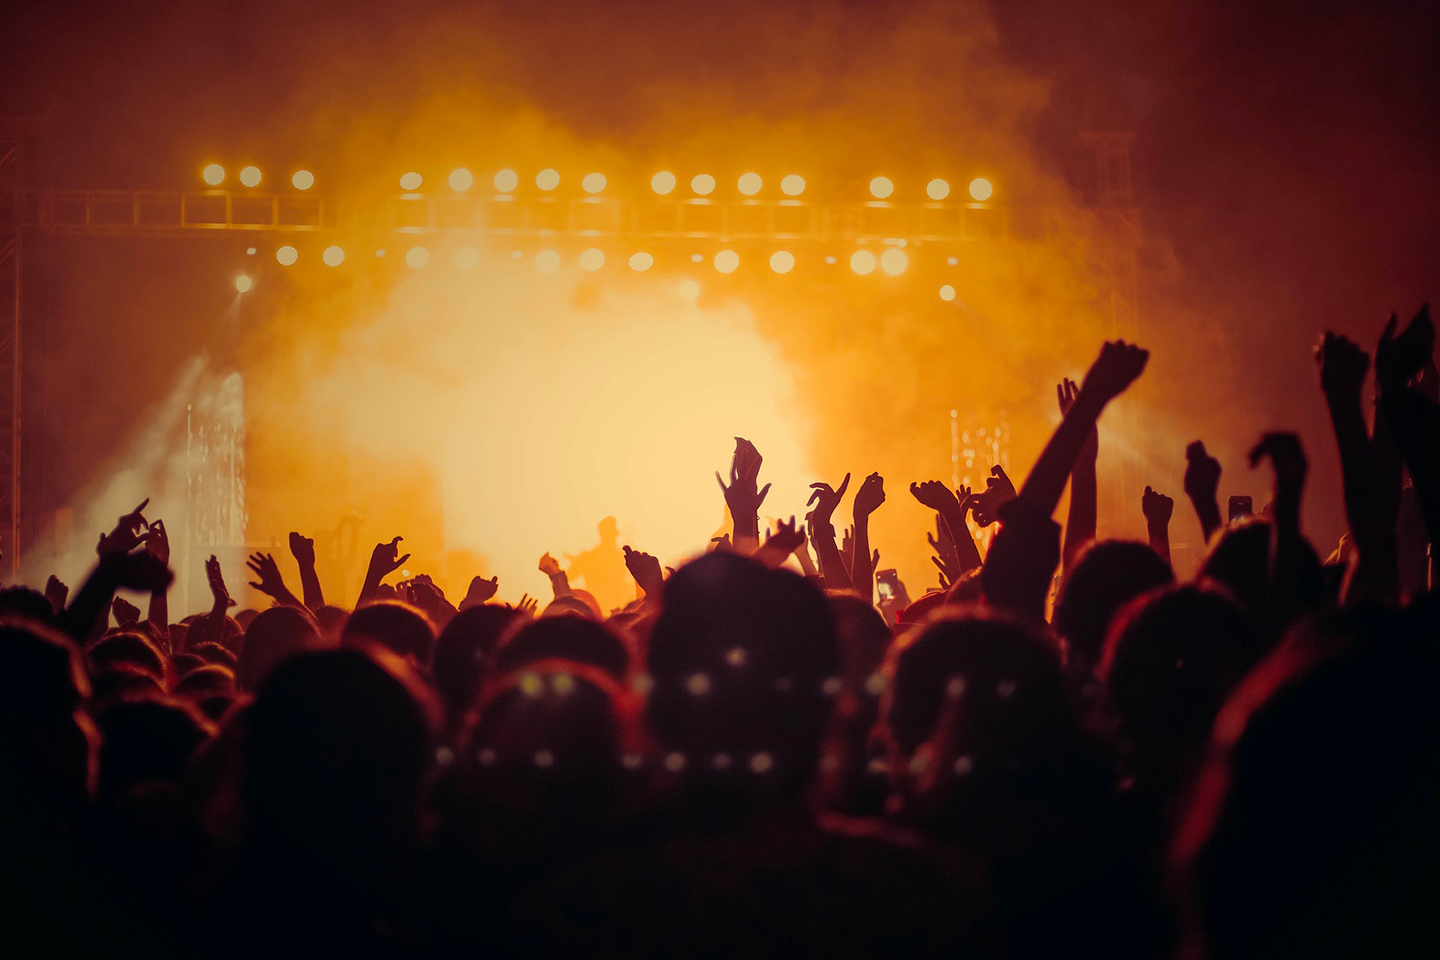 Concerts and culture